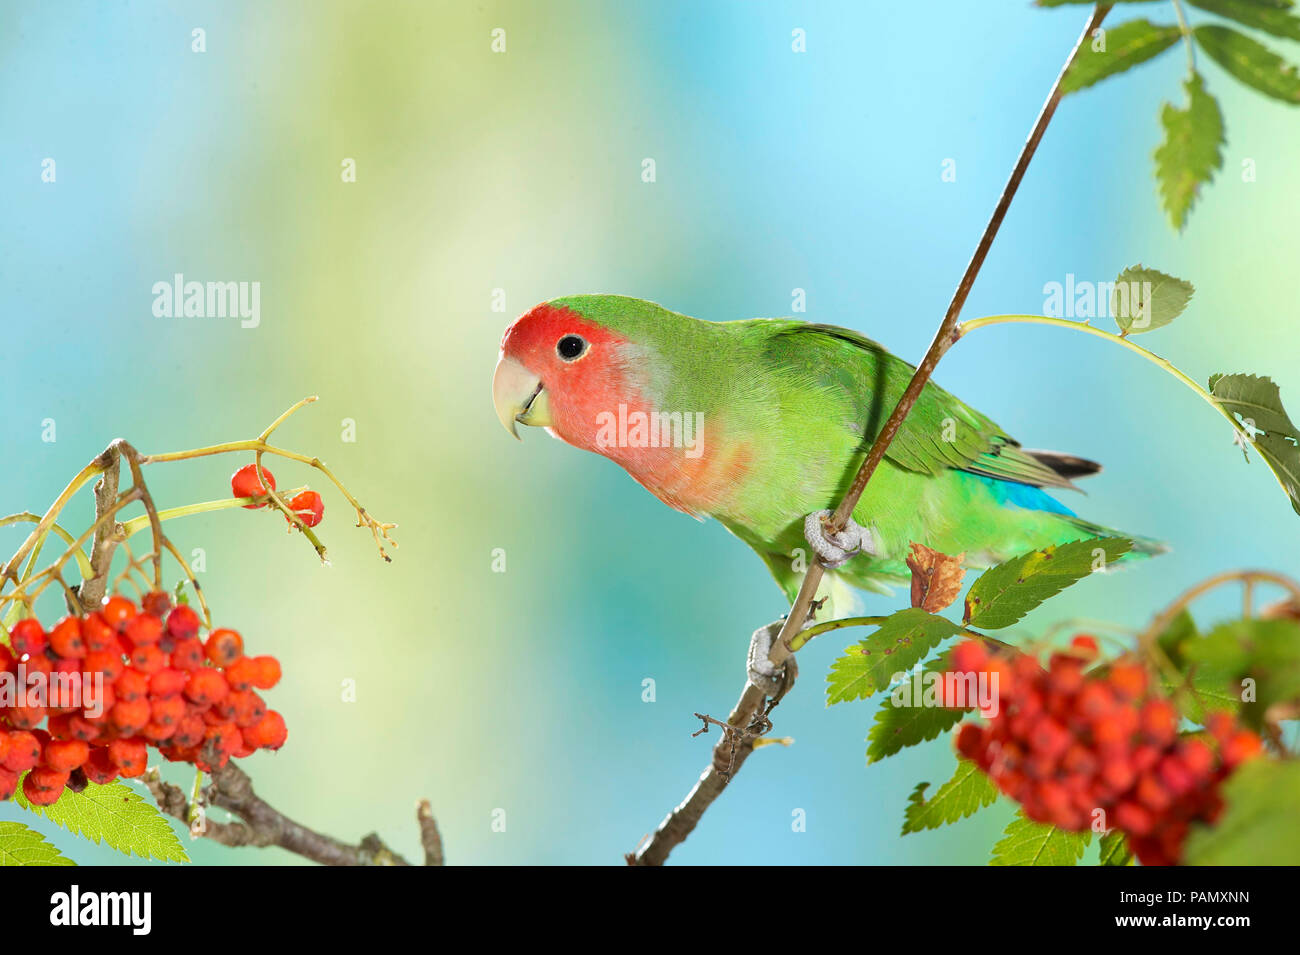 Rosy-faced Lovebird (Agapornis roseicollis). Adult bird perched on twig with ripe Rowan berries. Germany. - Stock Image